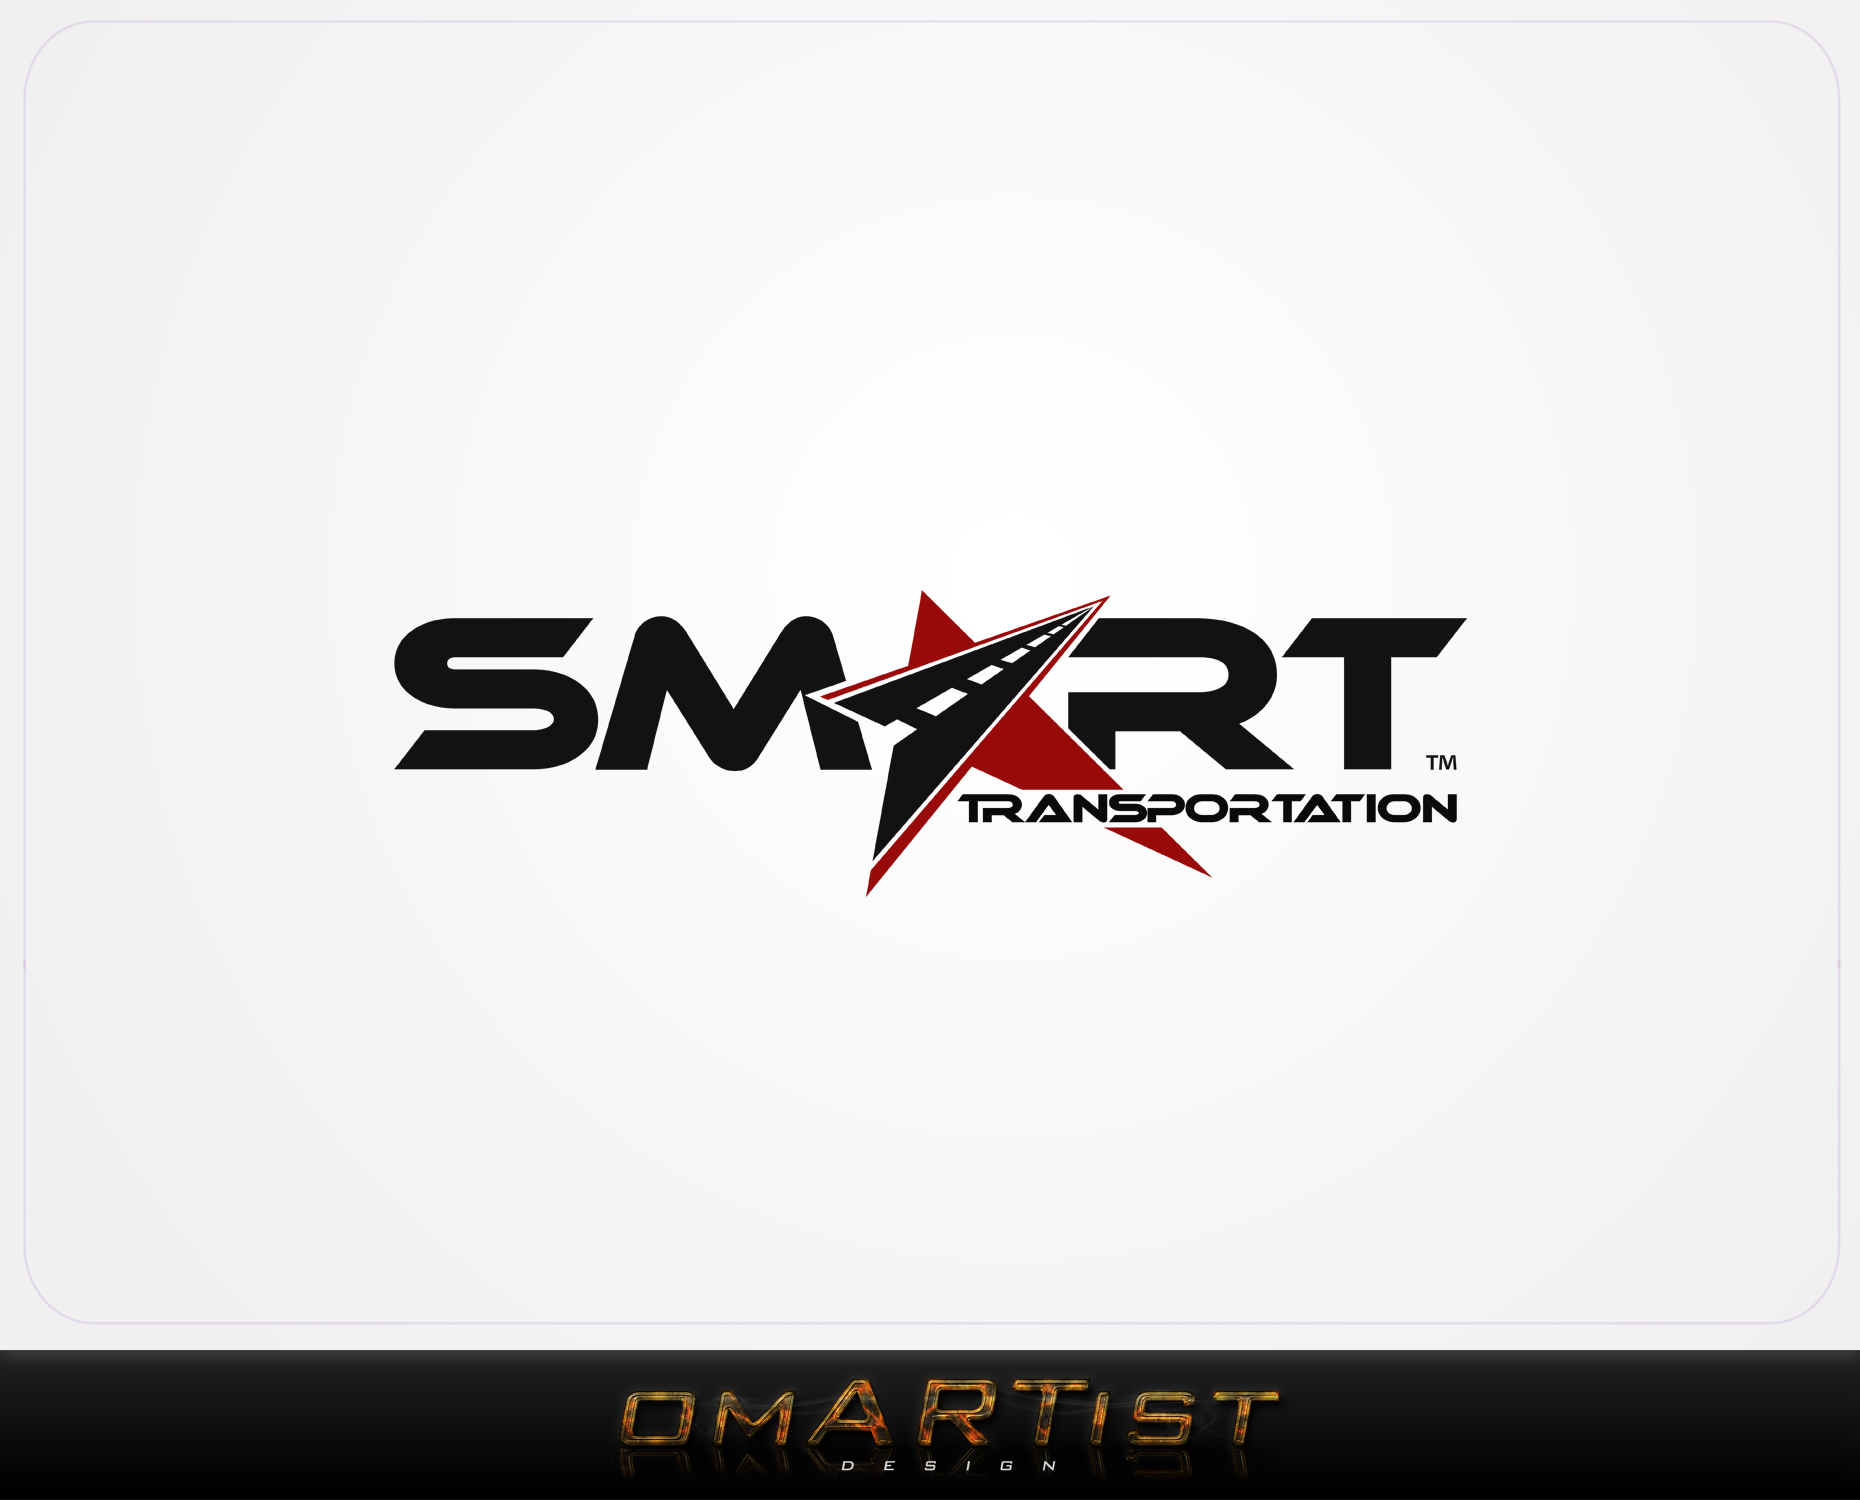 Logo Design by omARTist - Entry No. 133 in the Logo Design Contest Imaginative Logo Design for Smart Transportation.